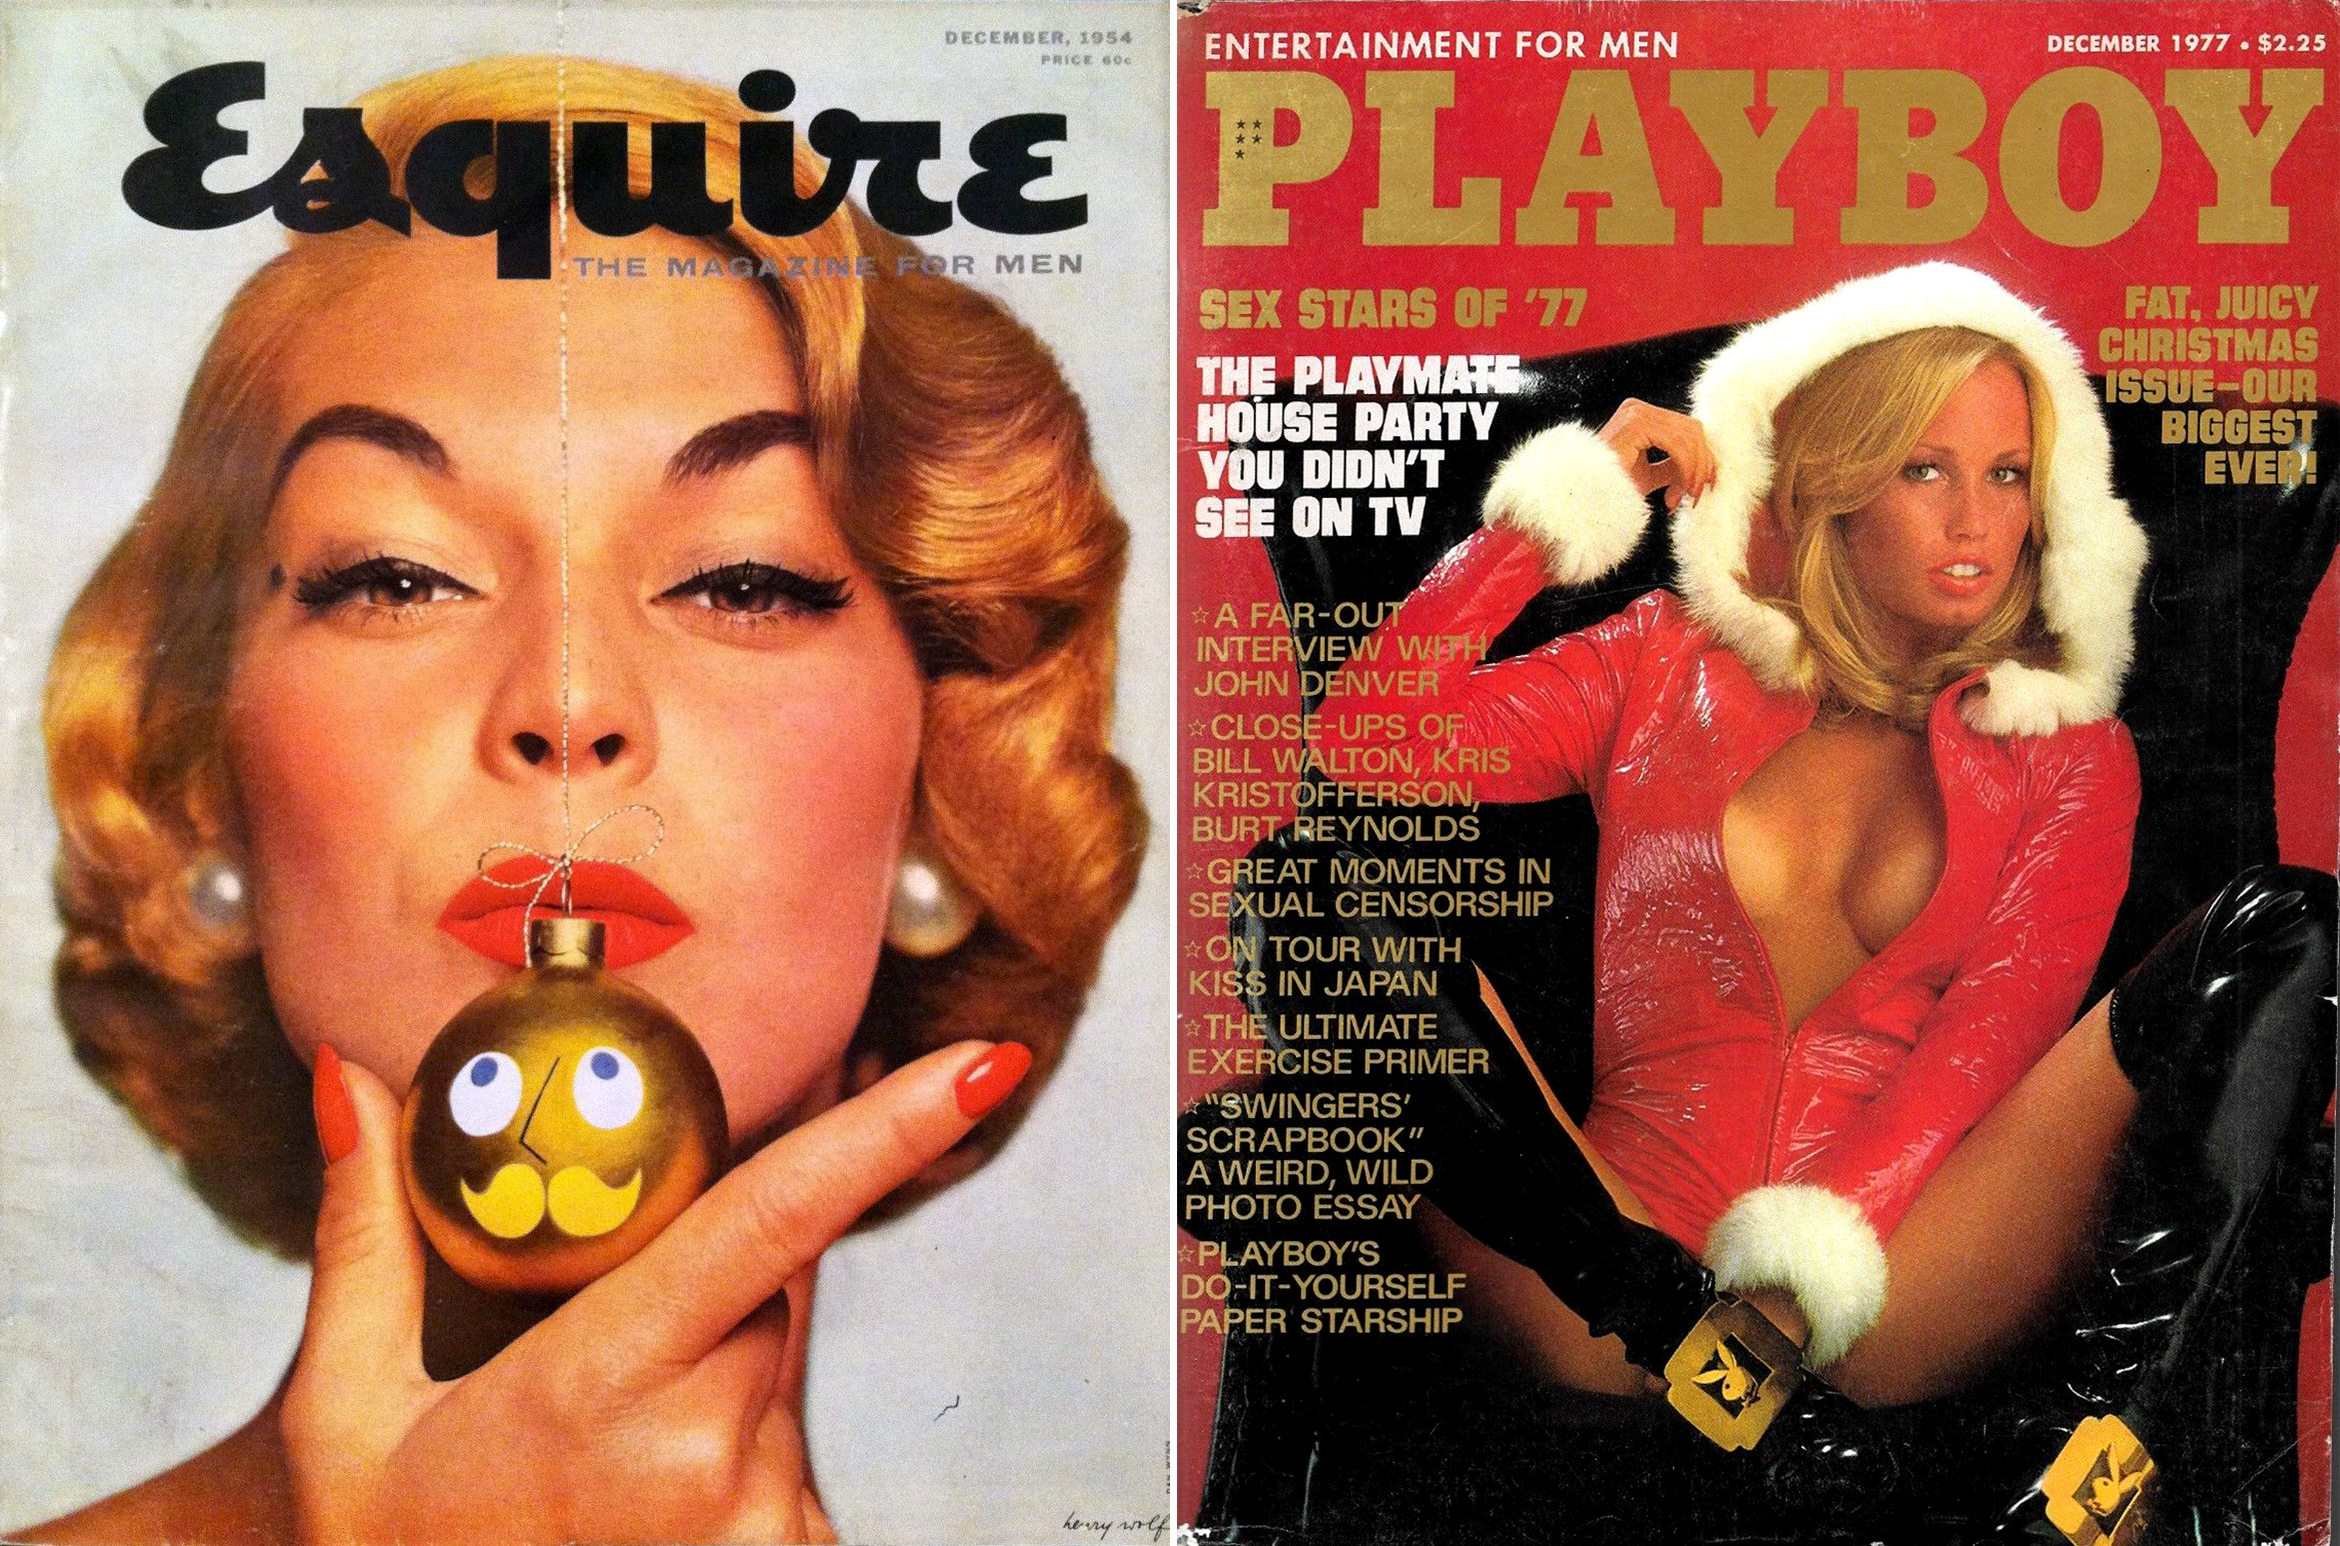 december-1954 1977 christmas issues